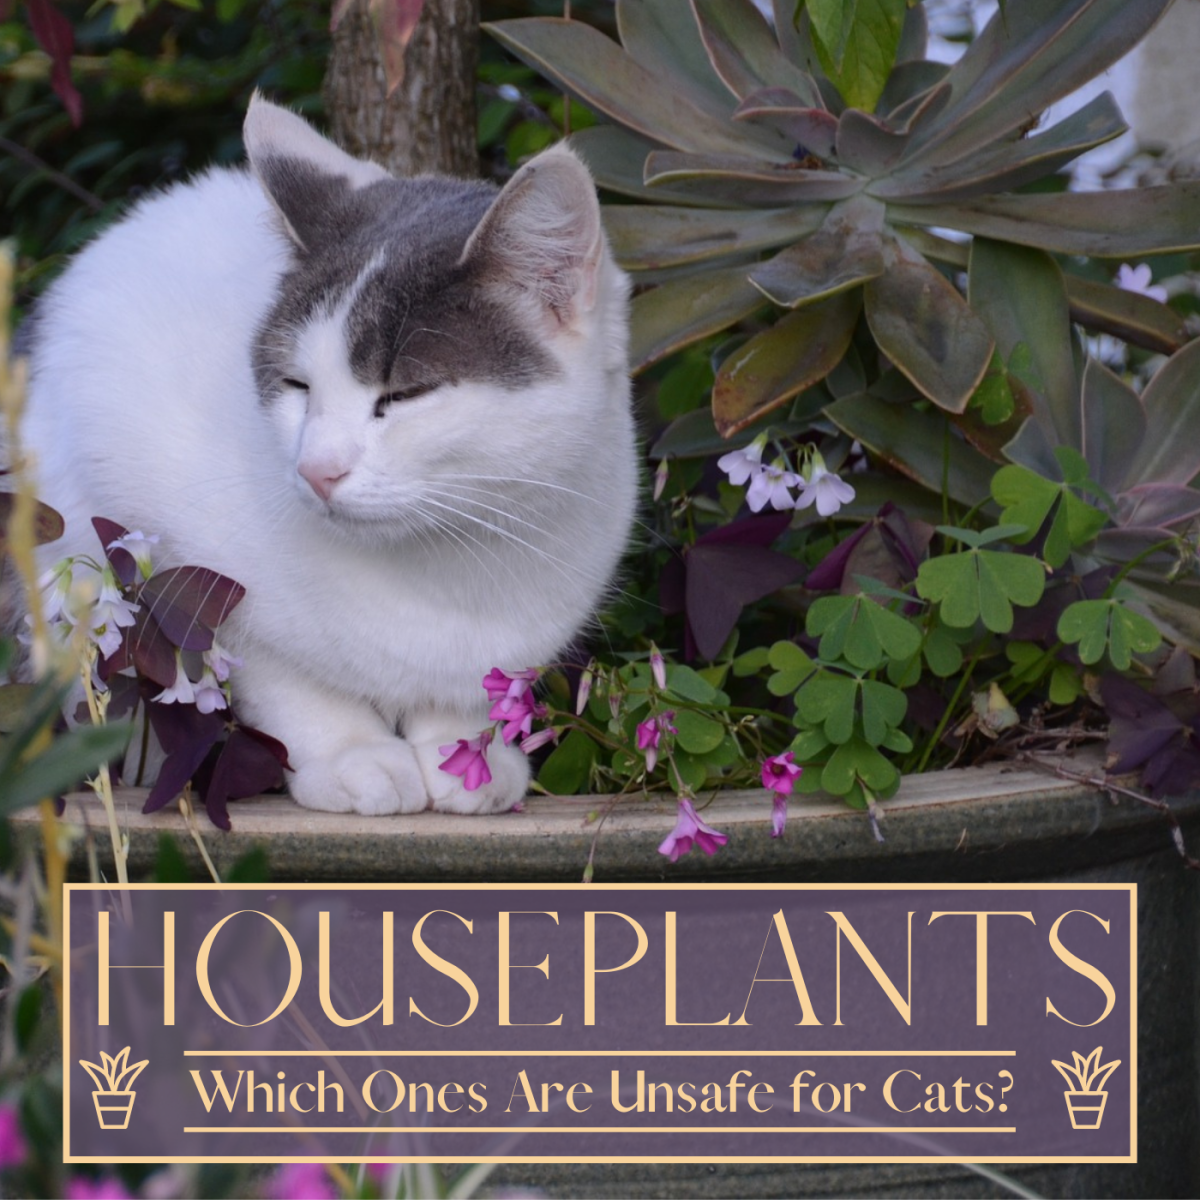 Many common houseplants can be poisonous to cats. Learn which ones to avoid to keep your pets safe.